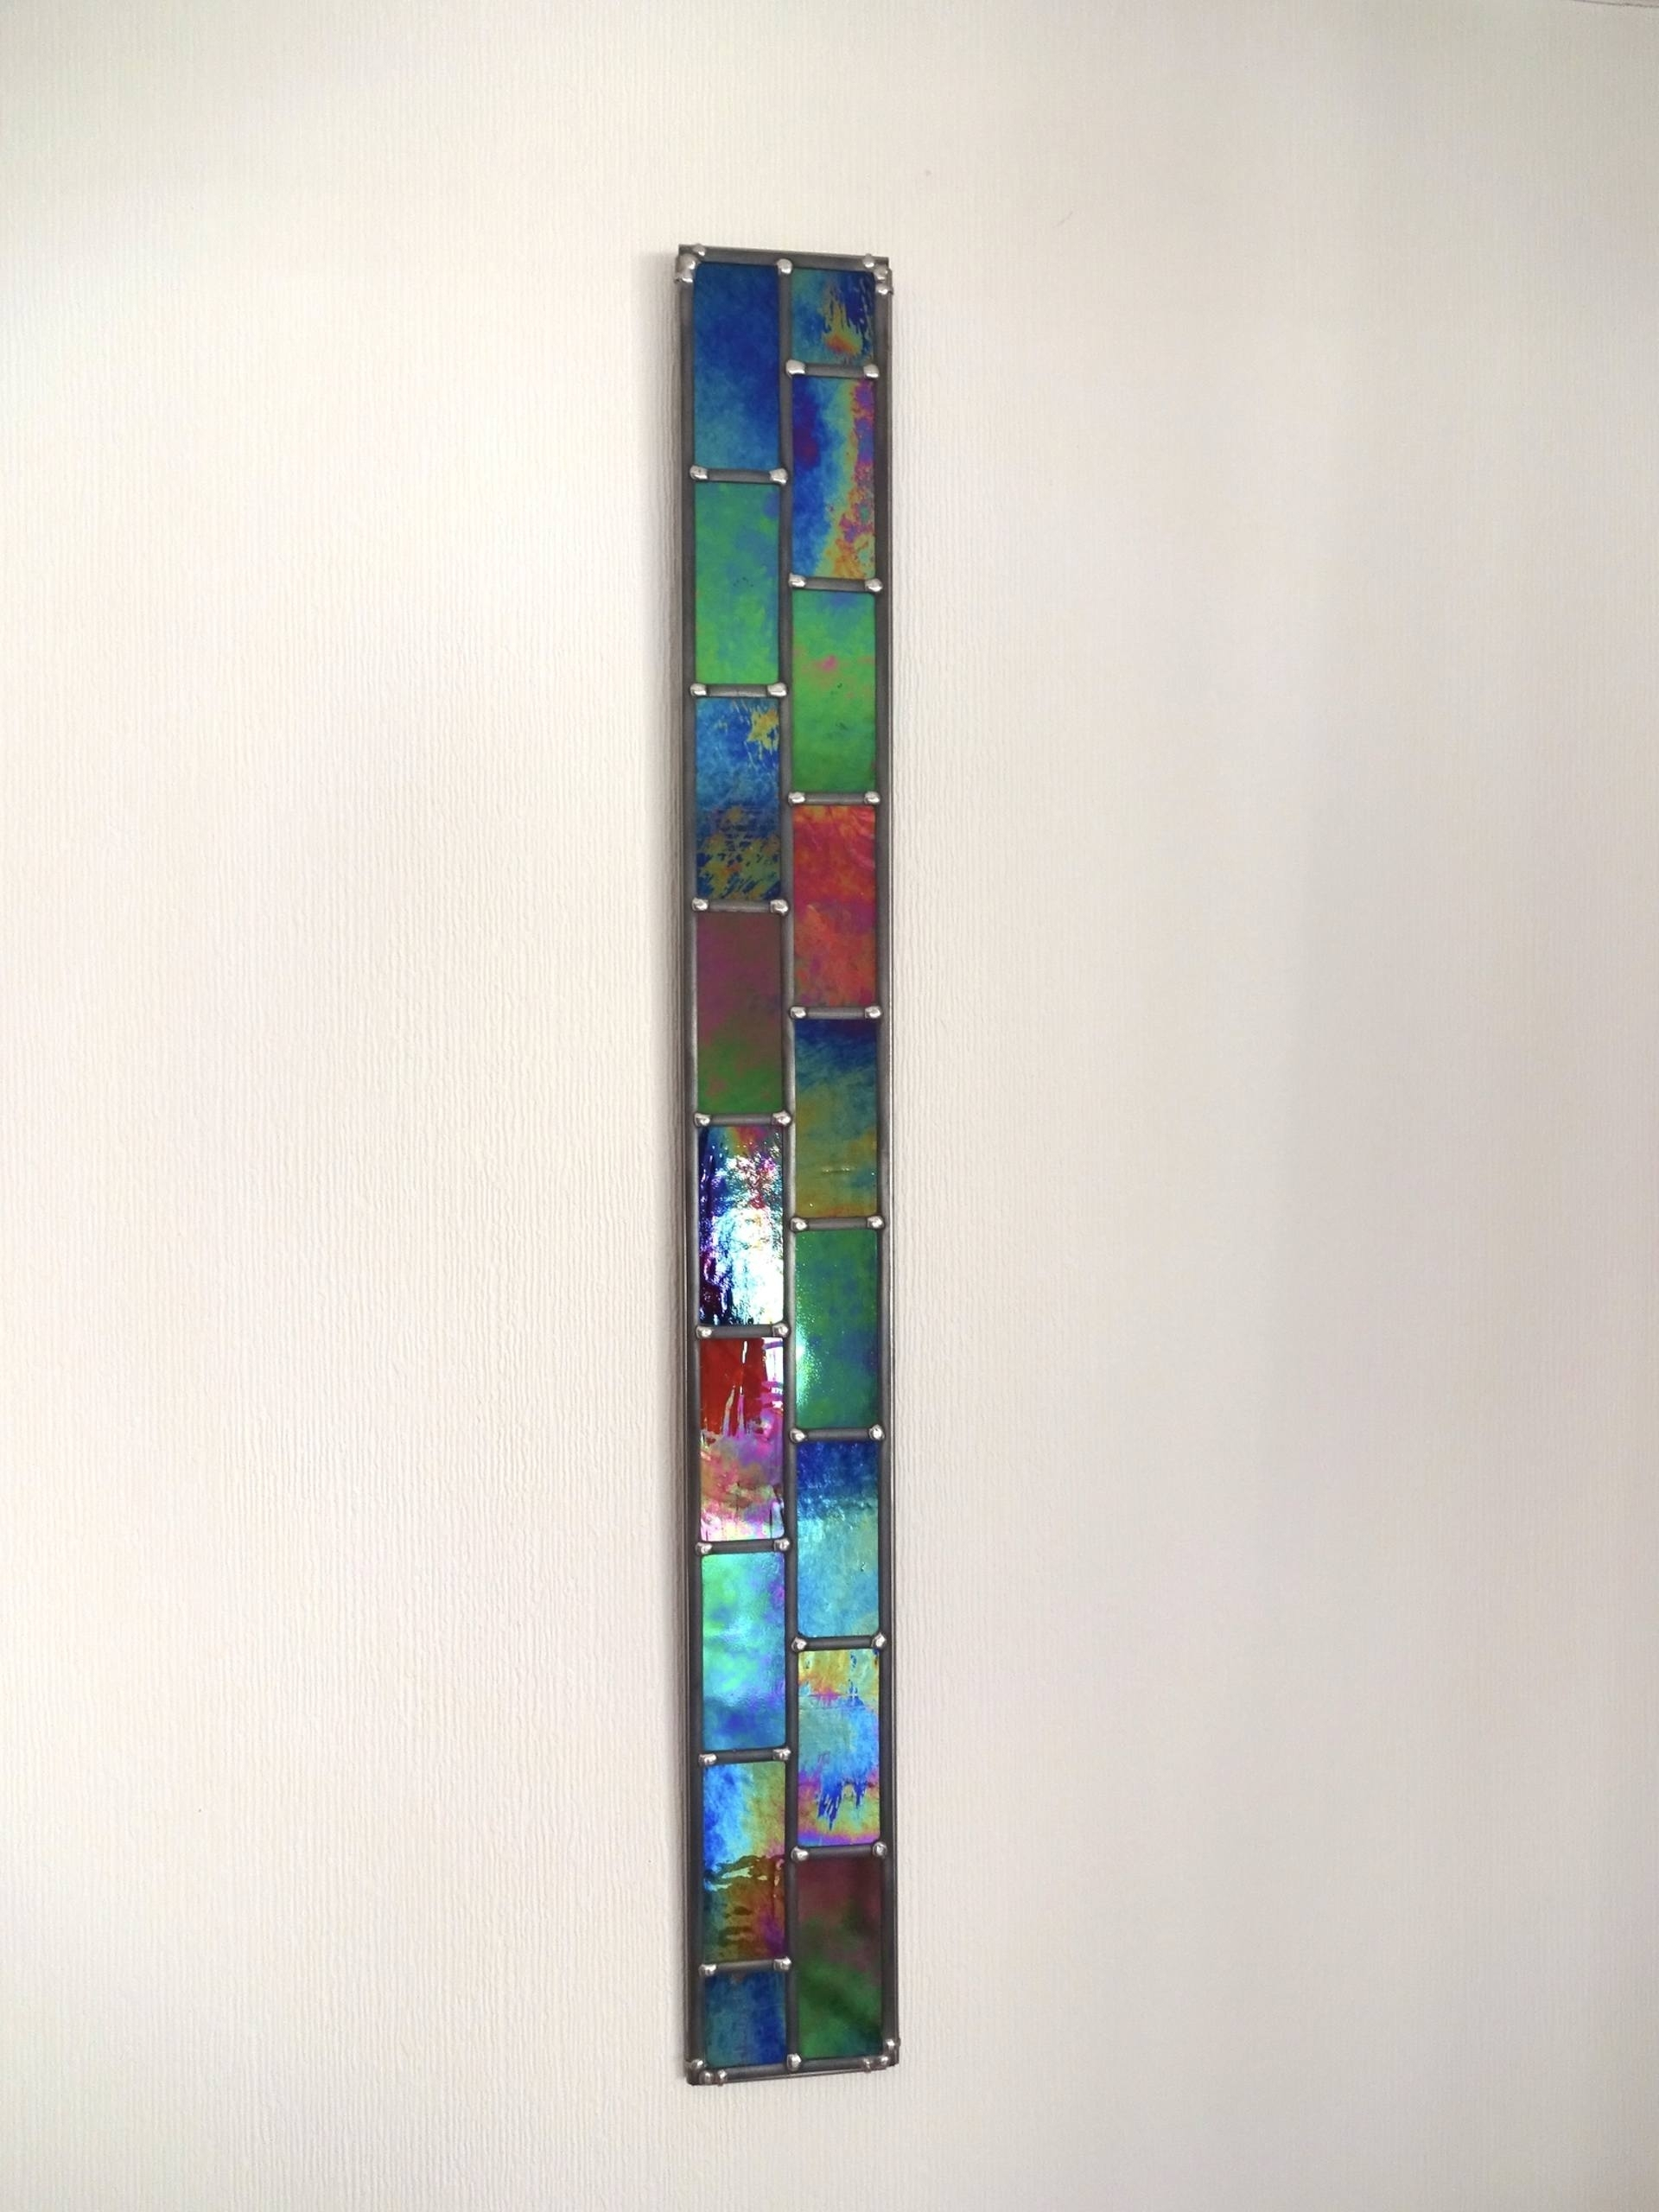 Saatchi Art: Stronger Together – 2D Opaque Stained Glass Wall Art Regarding Recent Stained Glass Wall Art (Gallery 16 of 20)